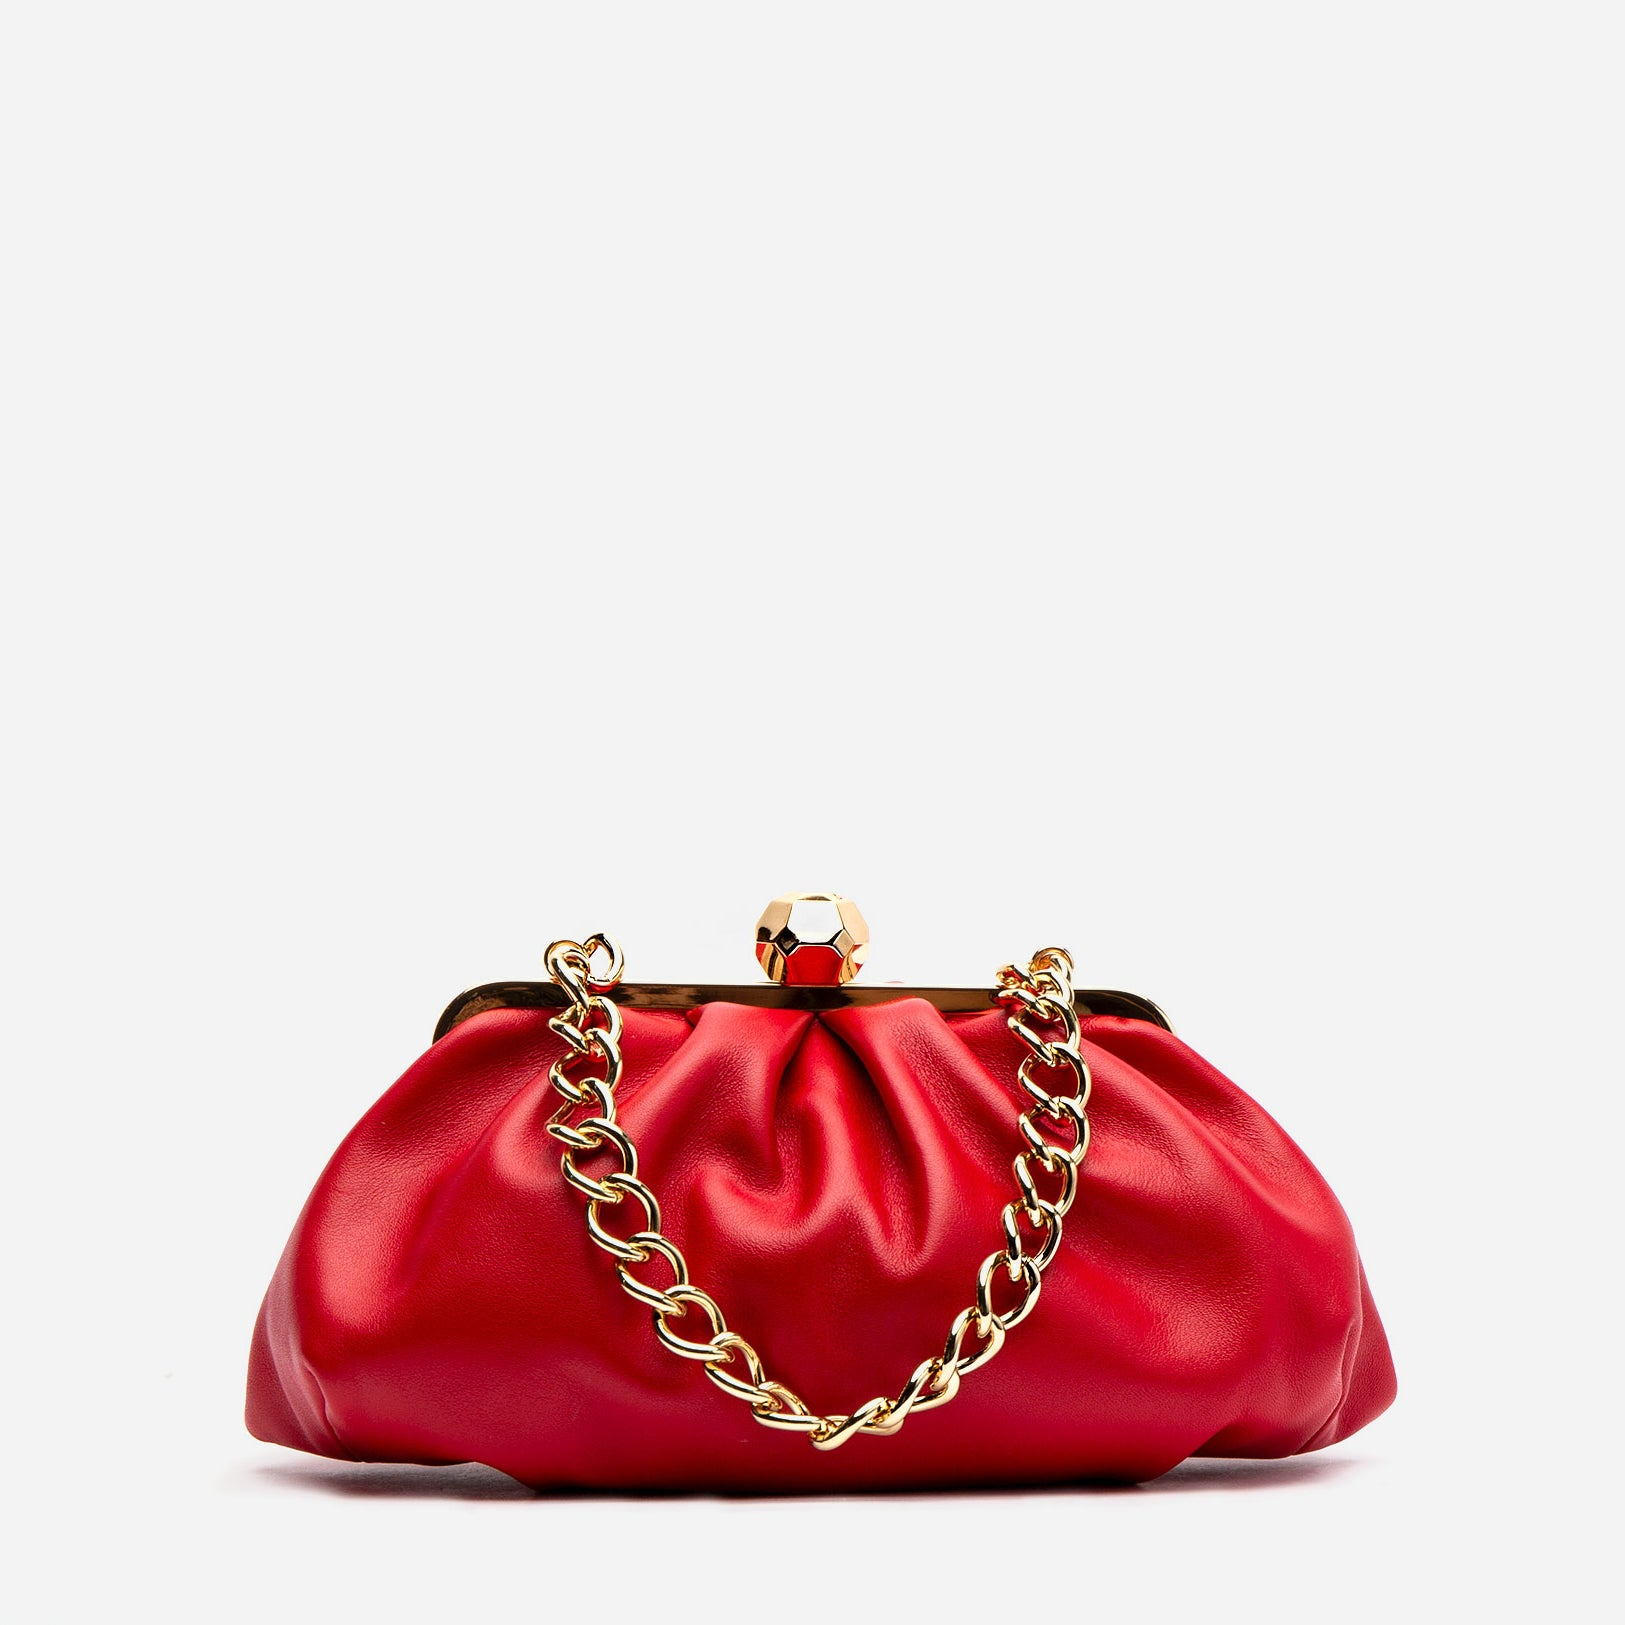 Zelda Frame Bag Nappa Leather Red - Frances Valentine